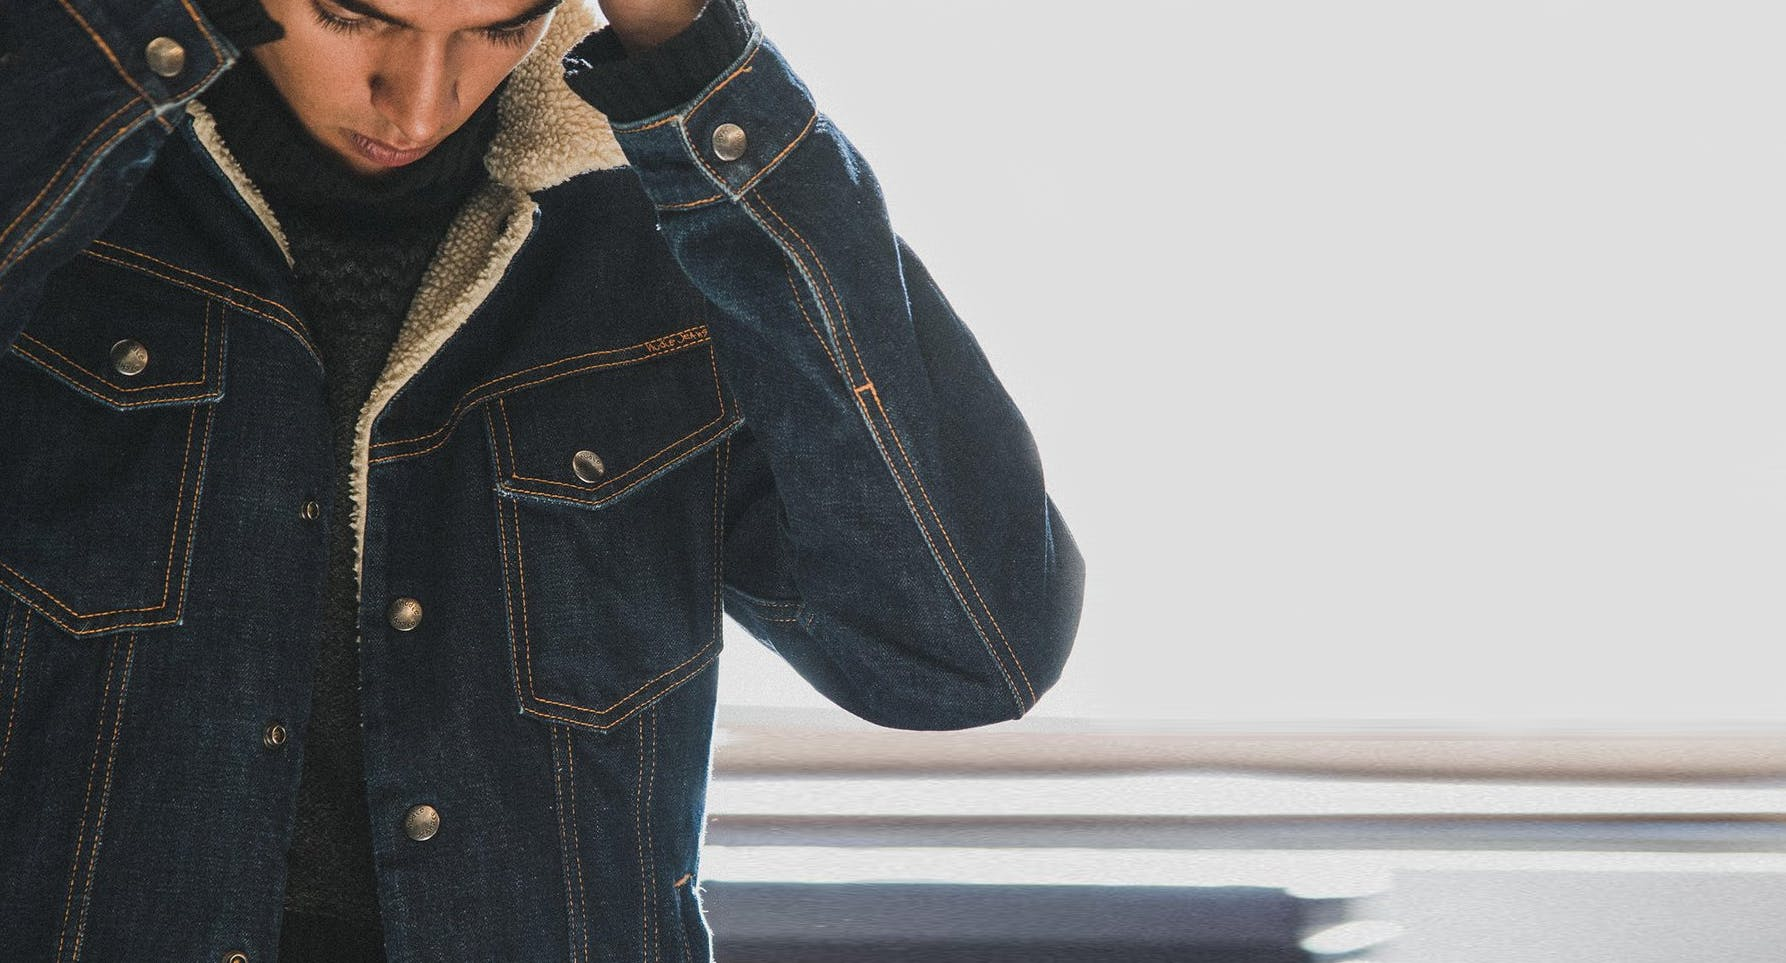 Nudie Jeans, Lenny Denim Jacket, denim jacket, nudie jeans, jean jacket